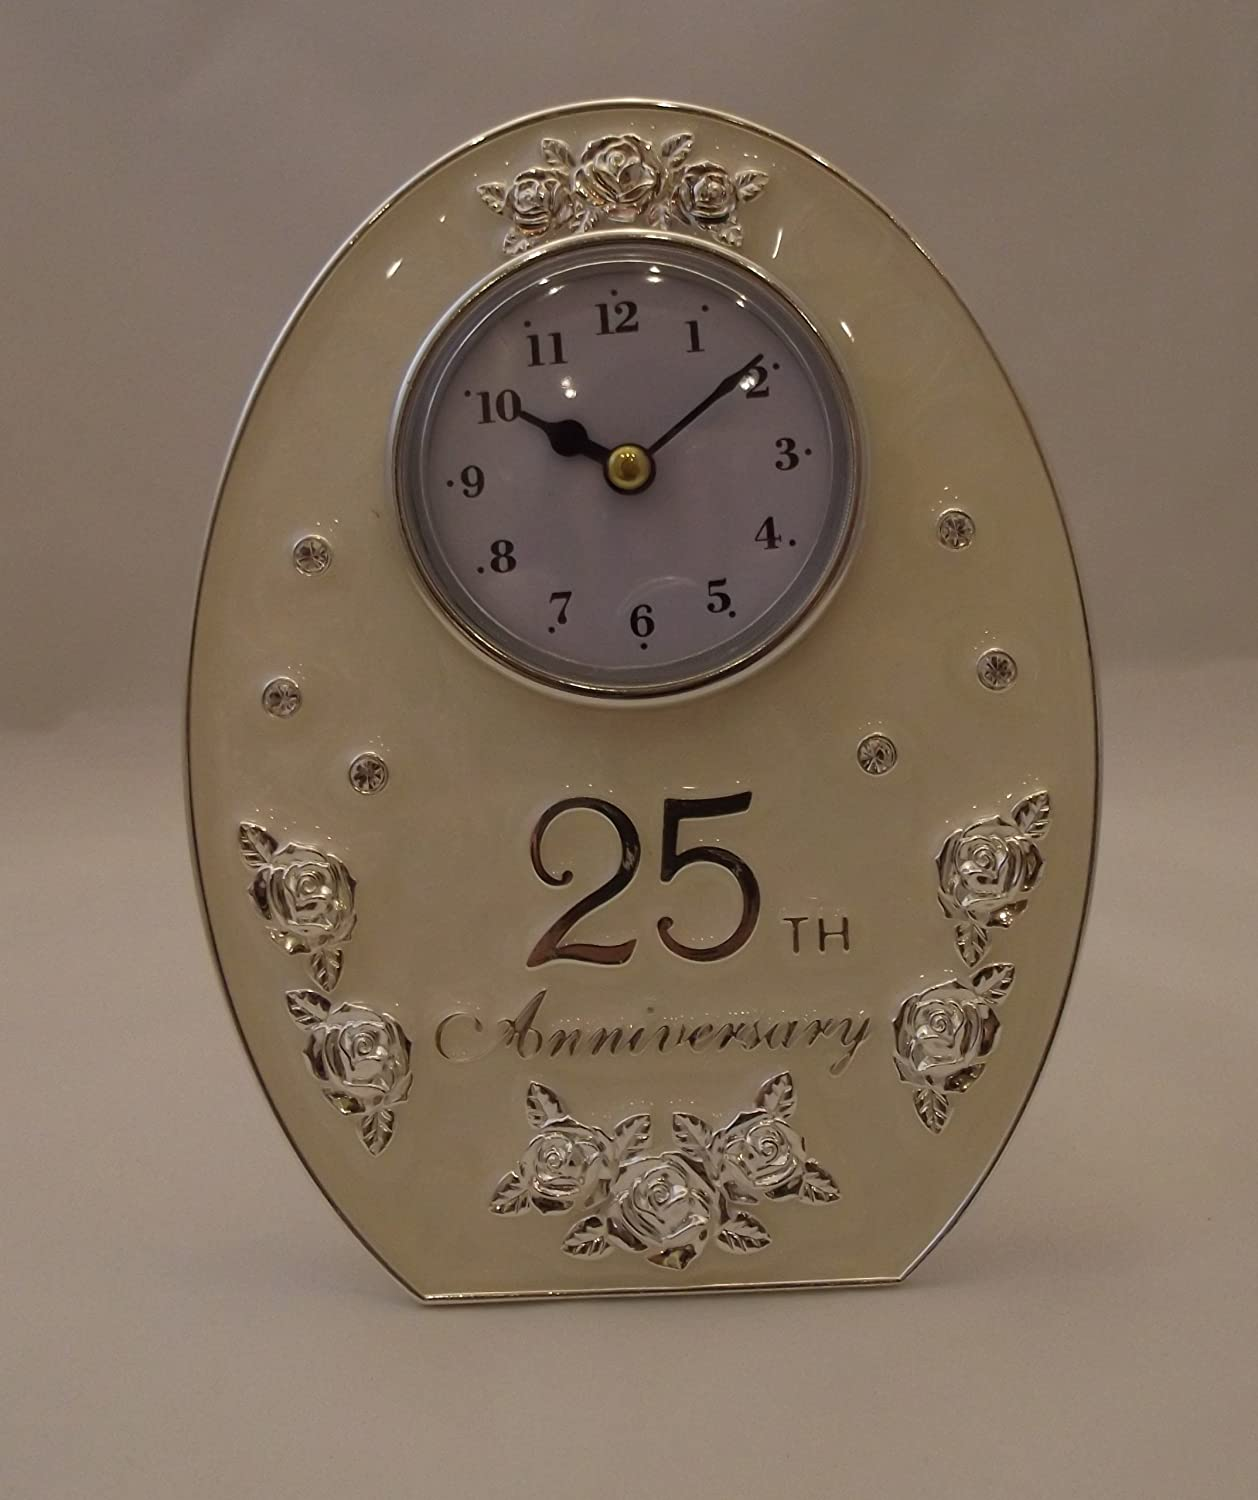 Crystal Glass & Rose Decorated 25th Wedding Anniversary Mantel Clock SoL 20850